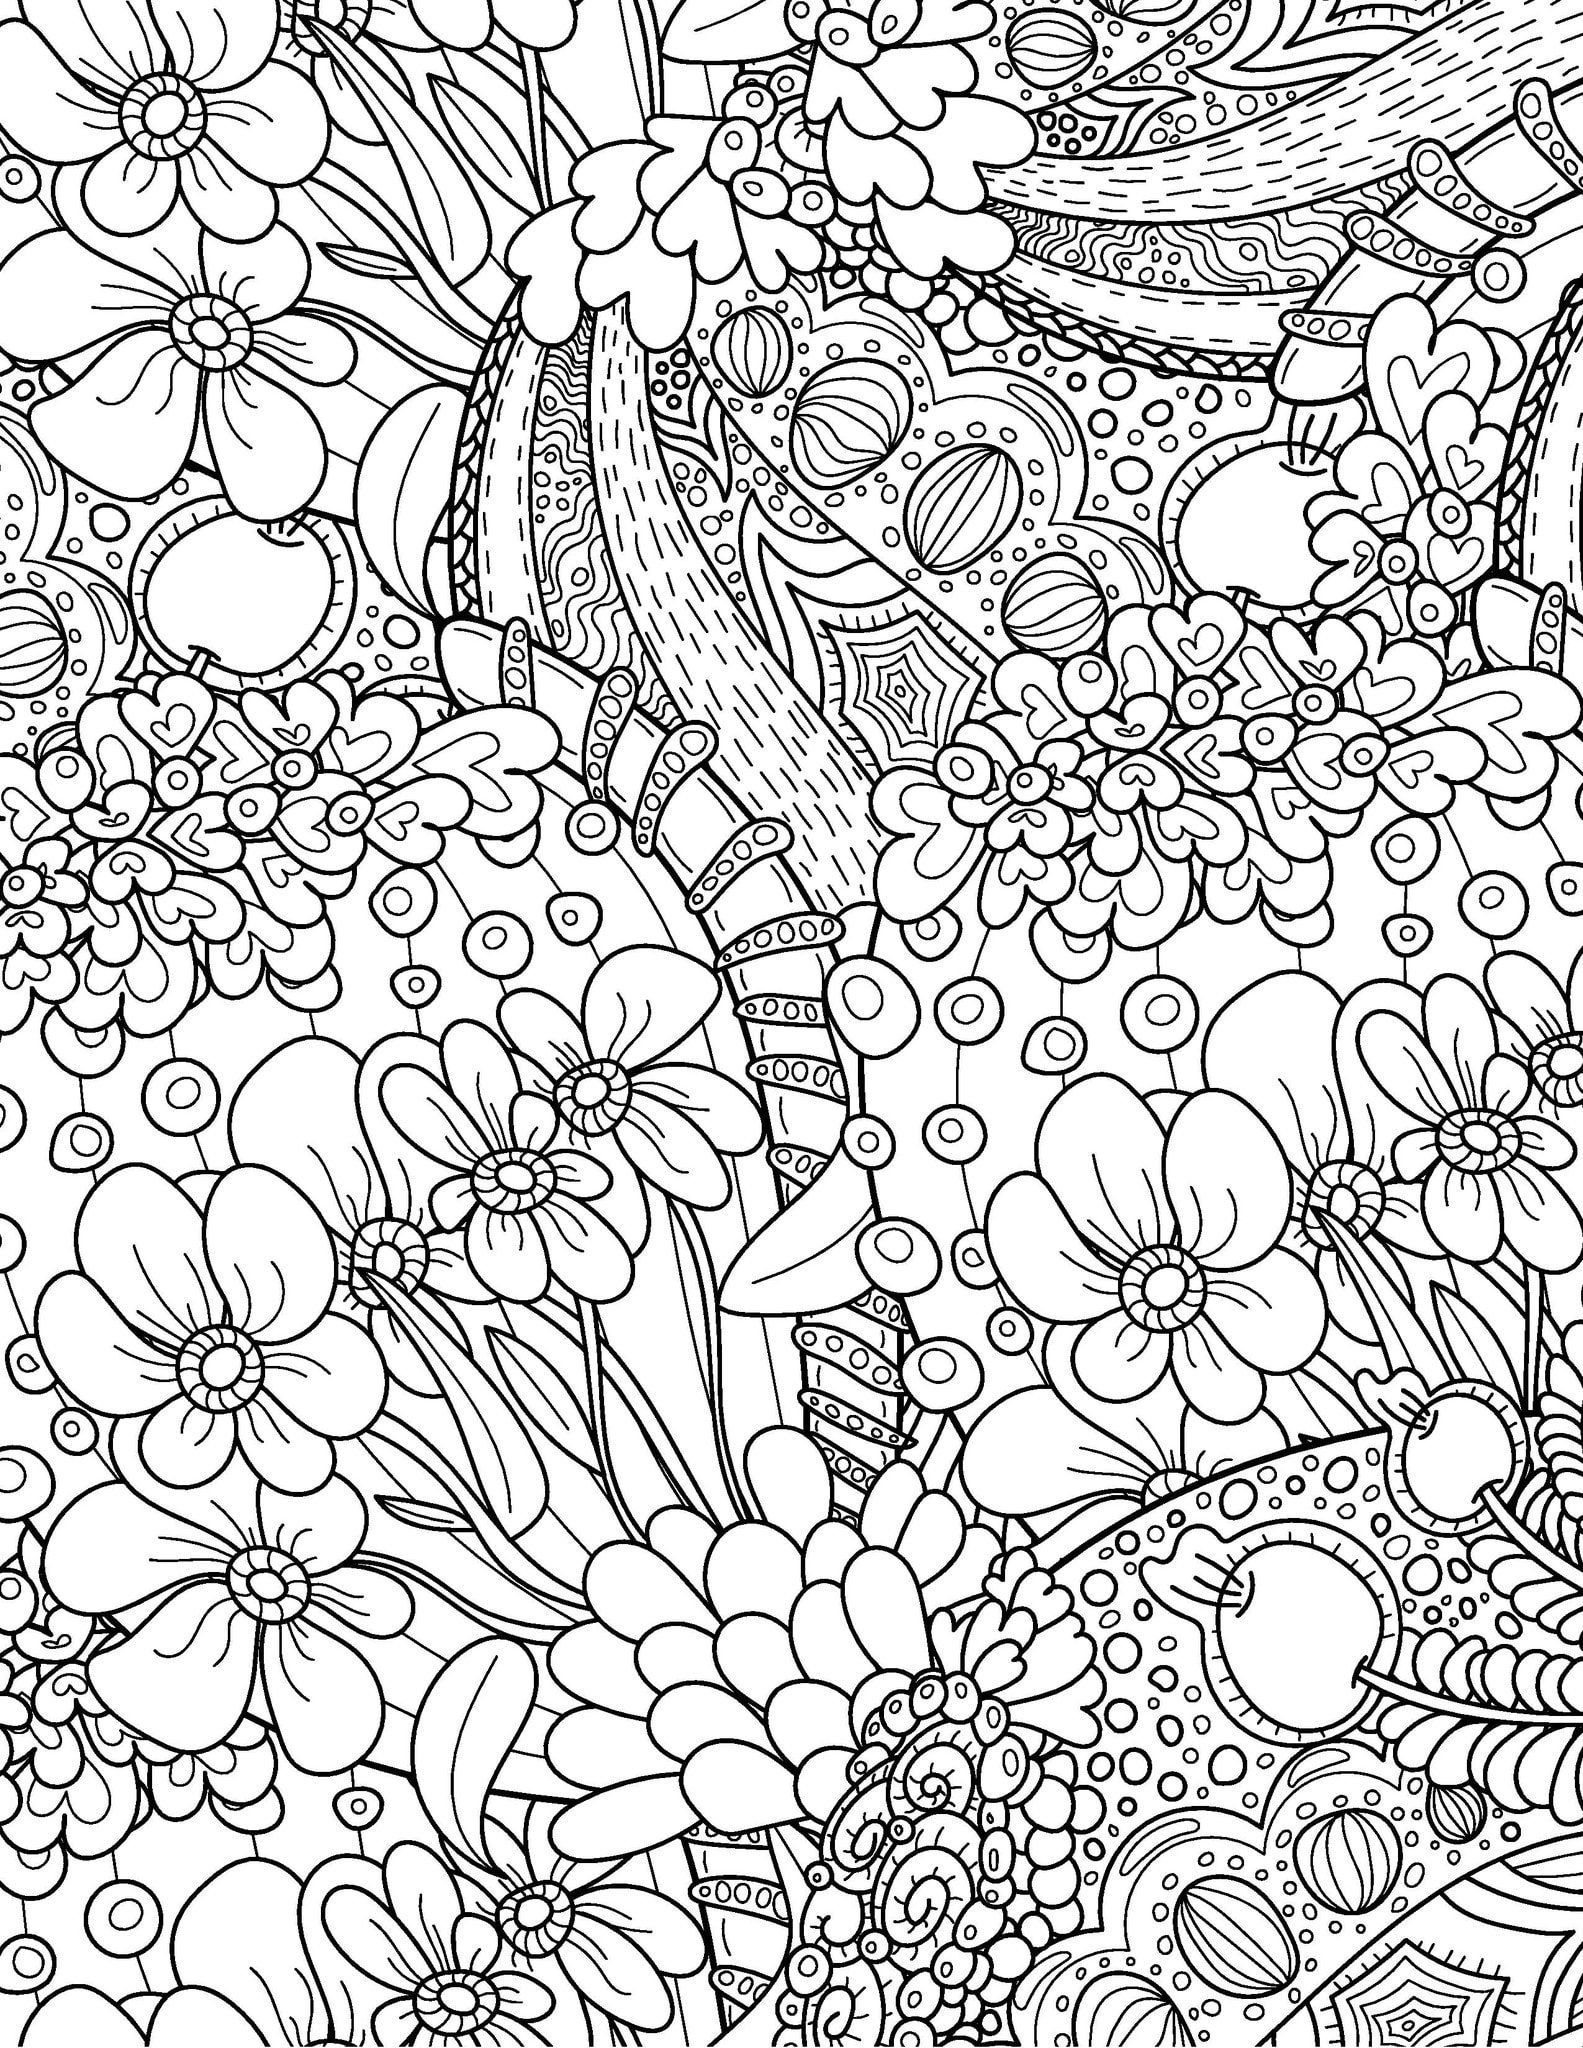 Take Time To Color The Flowers Coloring Book Live Your Life In Color Coloring Book Zone Coloring Books Mandala Coloring Pages Mandala Coloring Books